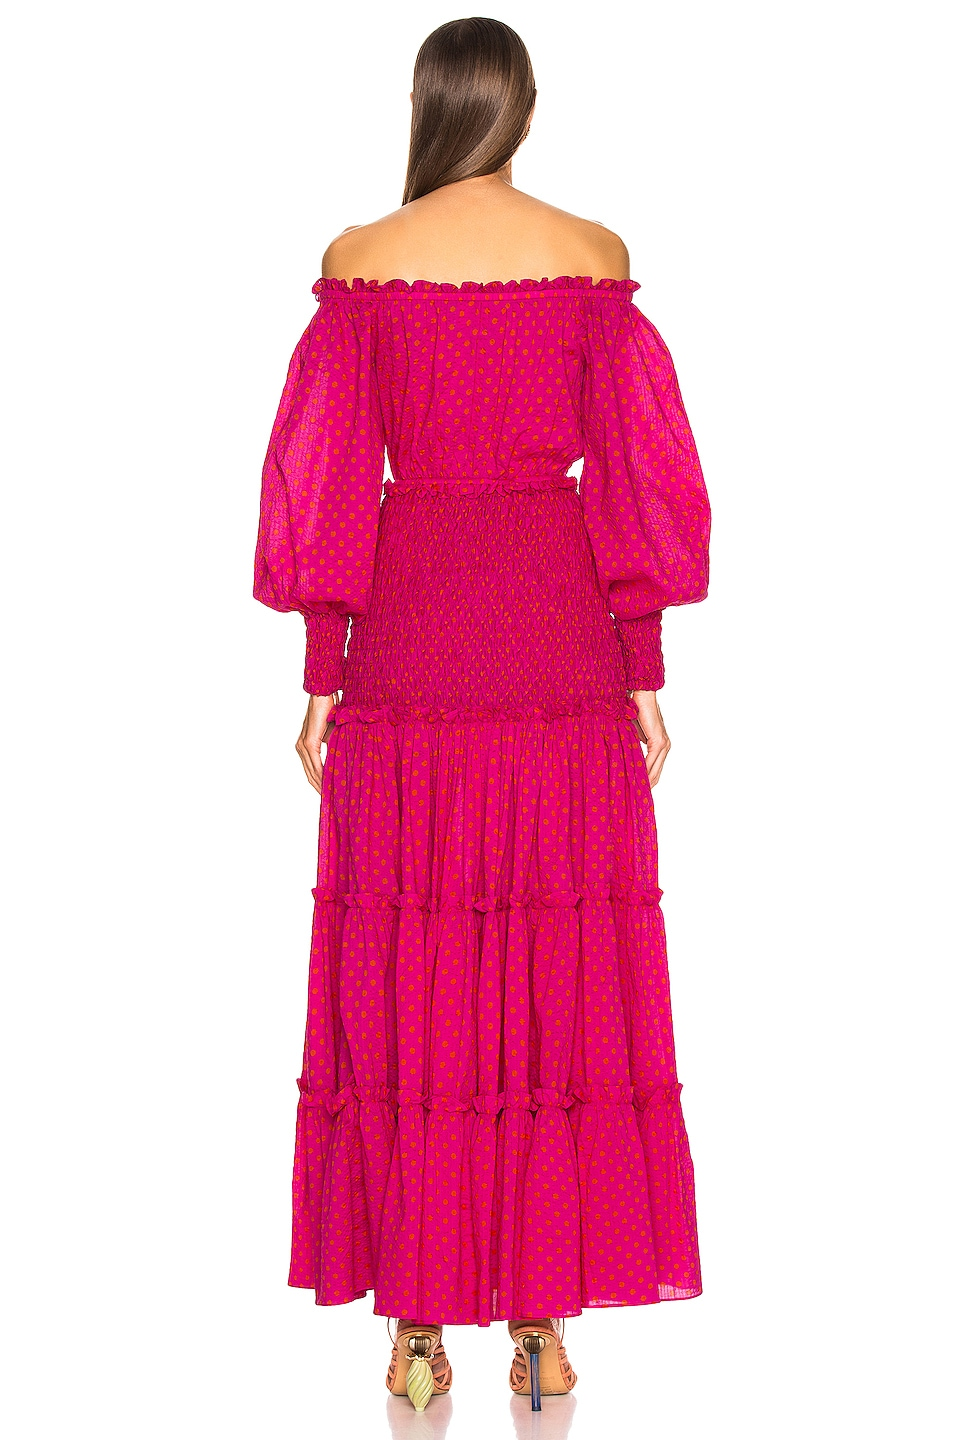 Image 3 of Alexis Thalssa Dress in Fuchsia Dot